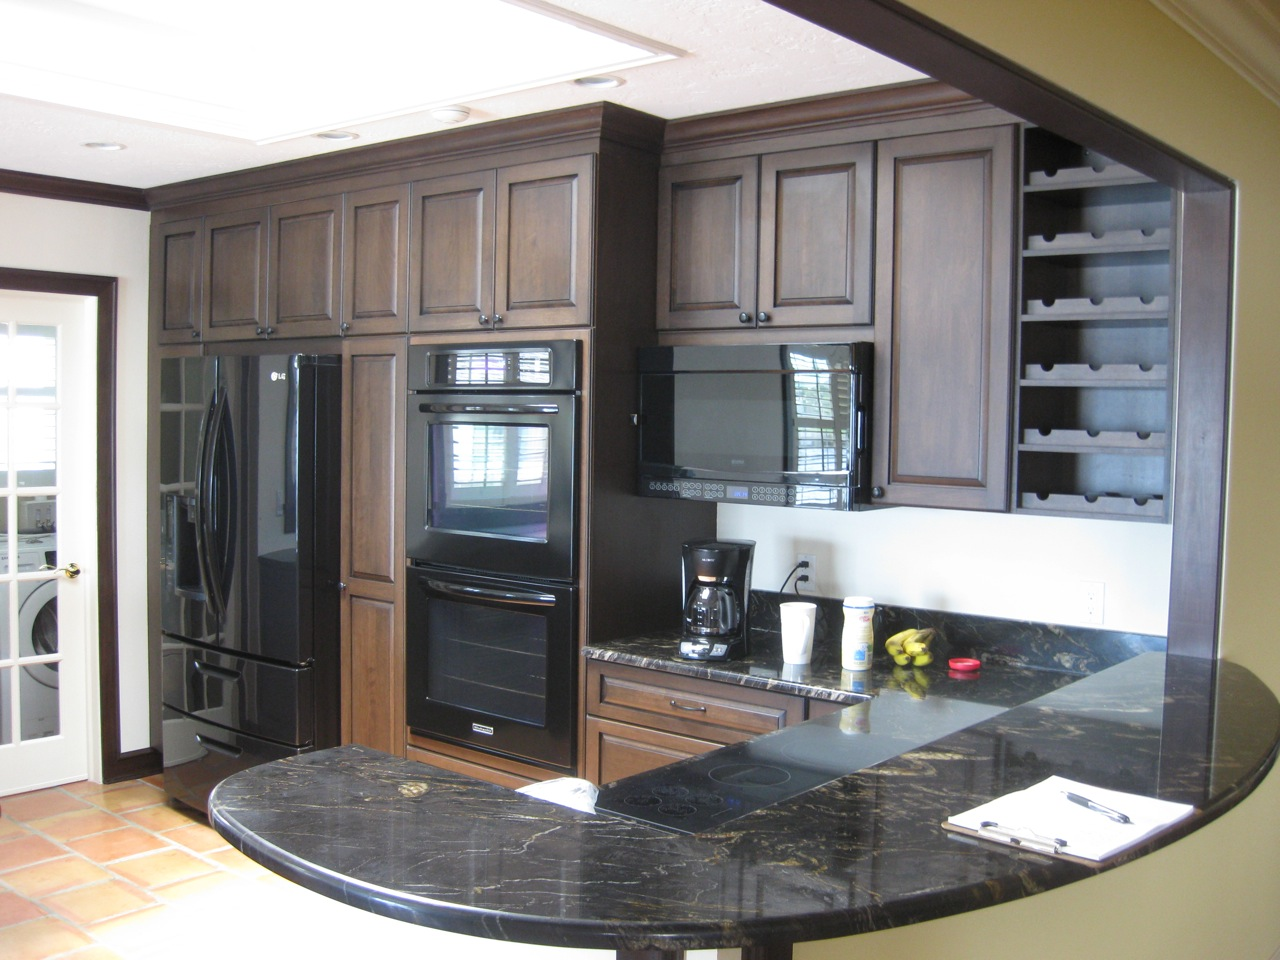 I worked with local craftsmen to create additional trim details which included Red Birch crown moulding and trim finished to match the cabinets and existing trim exactly. This attention to detail provides continuity for the kitchen, blending seamlessly with the existing house.